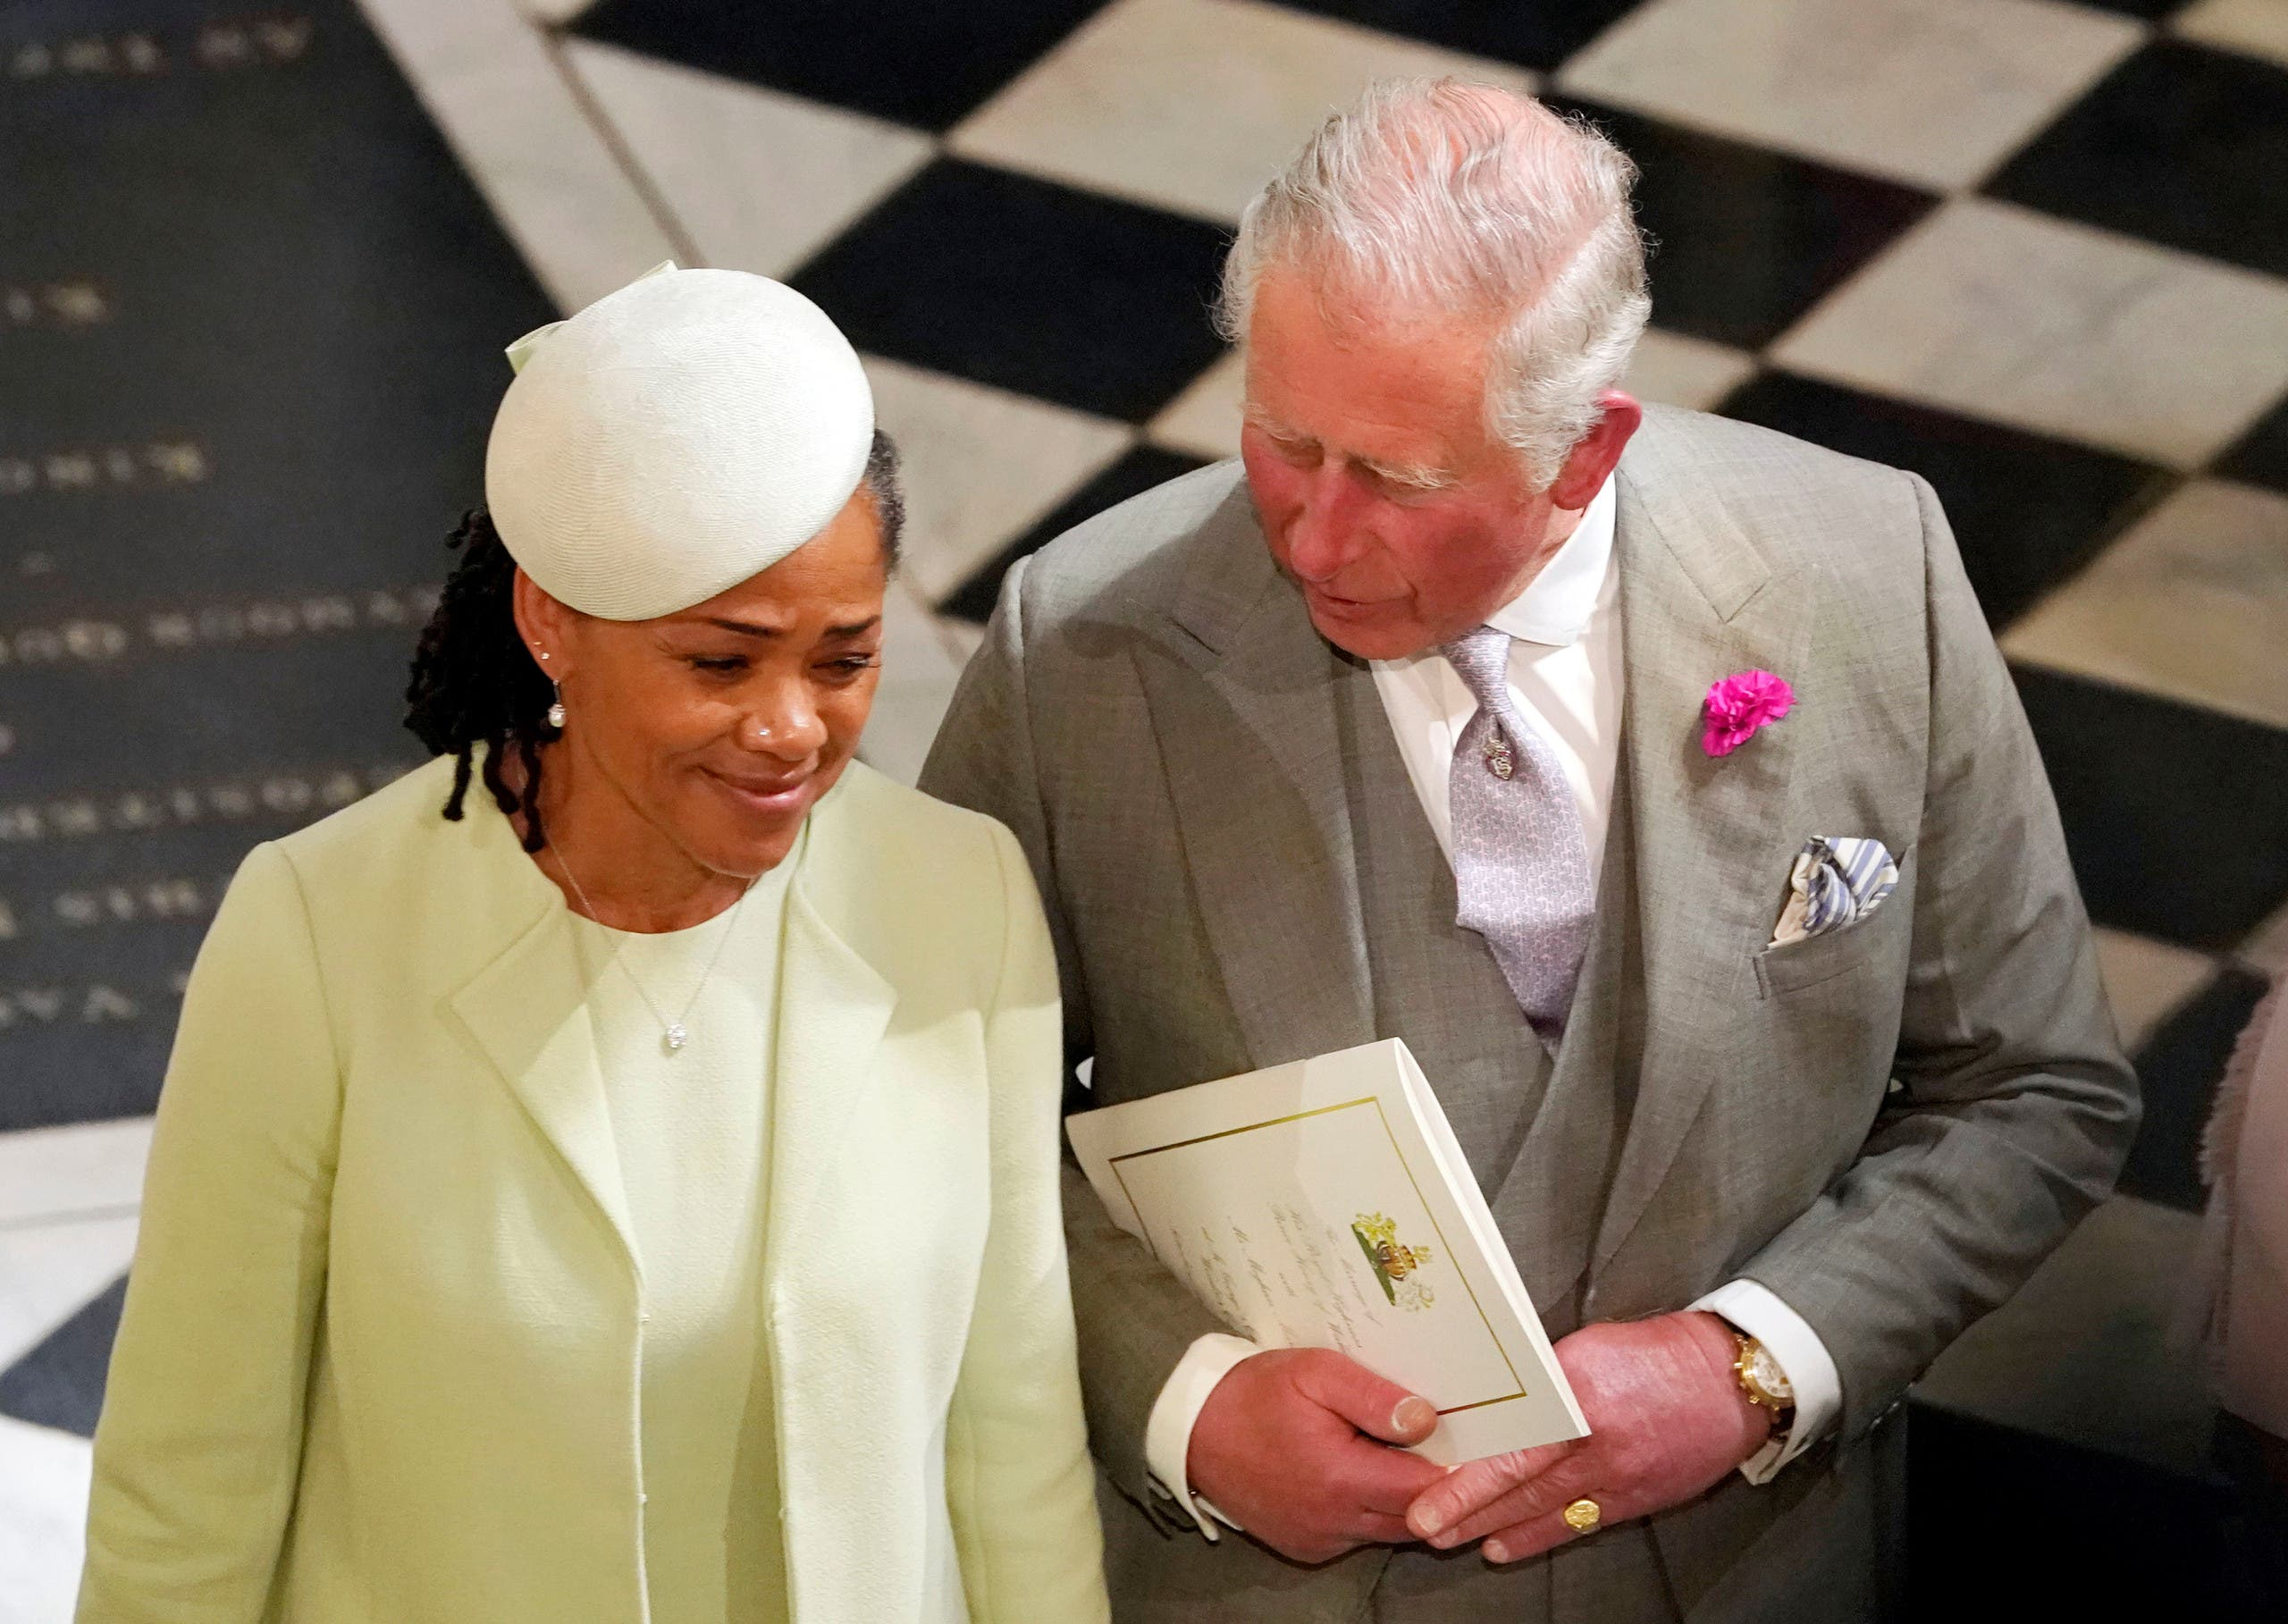 The Prince of Wales and Doria Ragland, mother of the bride, depart from St George's Chapel in Windsor Castle after the wedding of Prince Harry and Meghan Markle in Windsor, Britain, May 19, 2018. Owen Humphreys/Pool via REUTERS